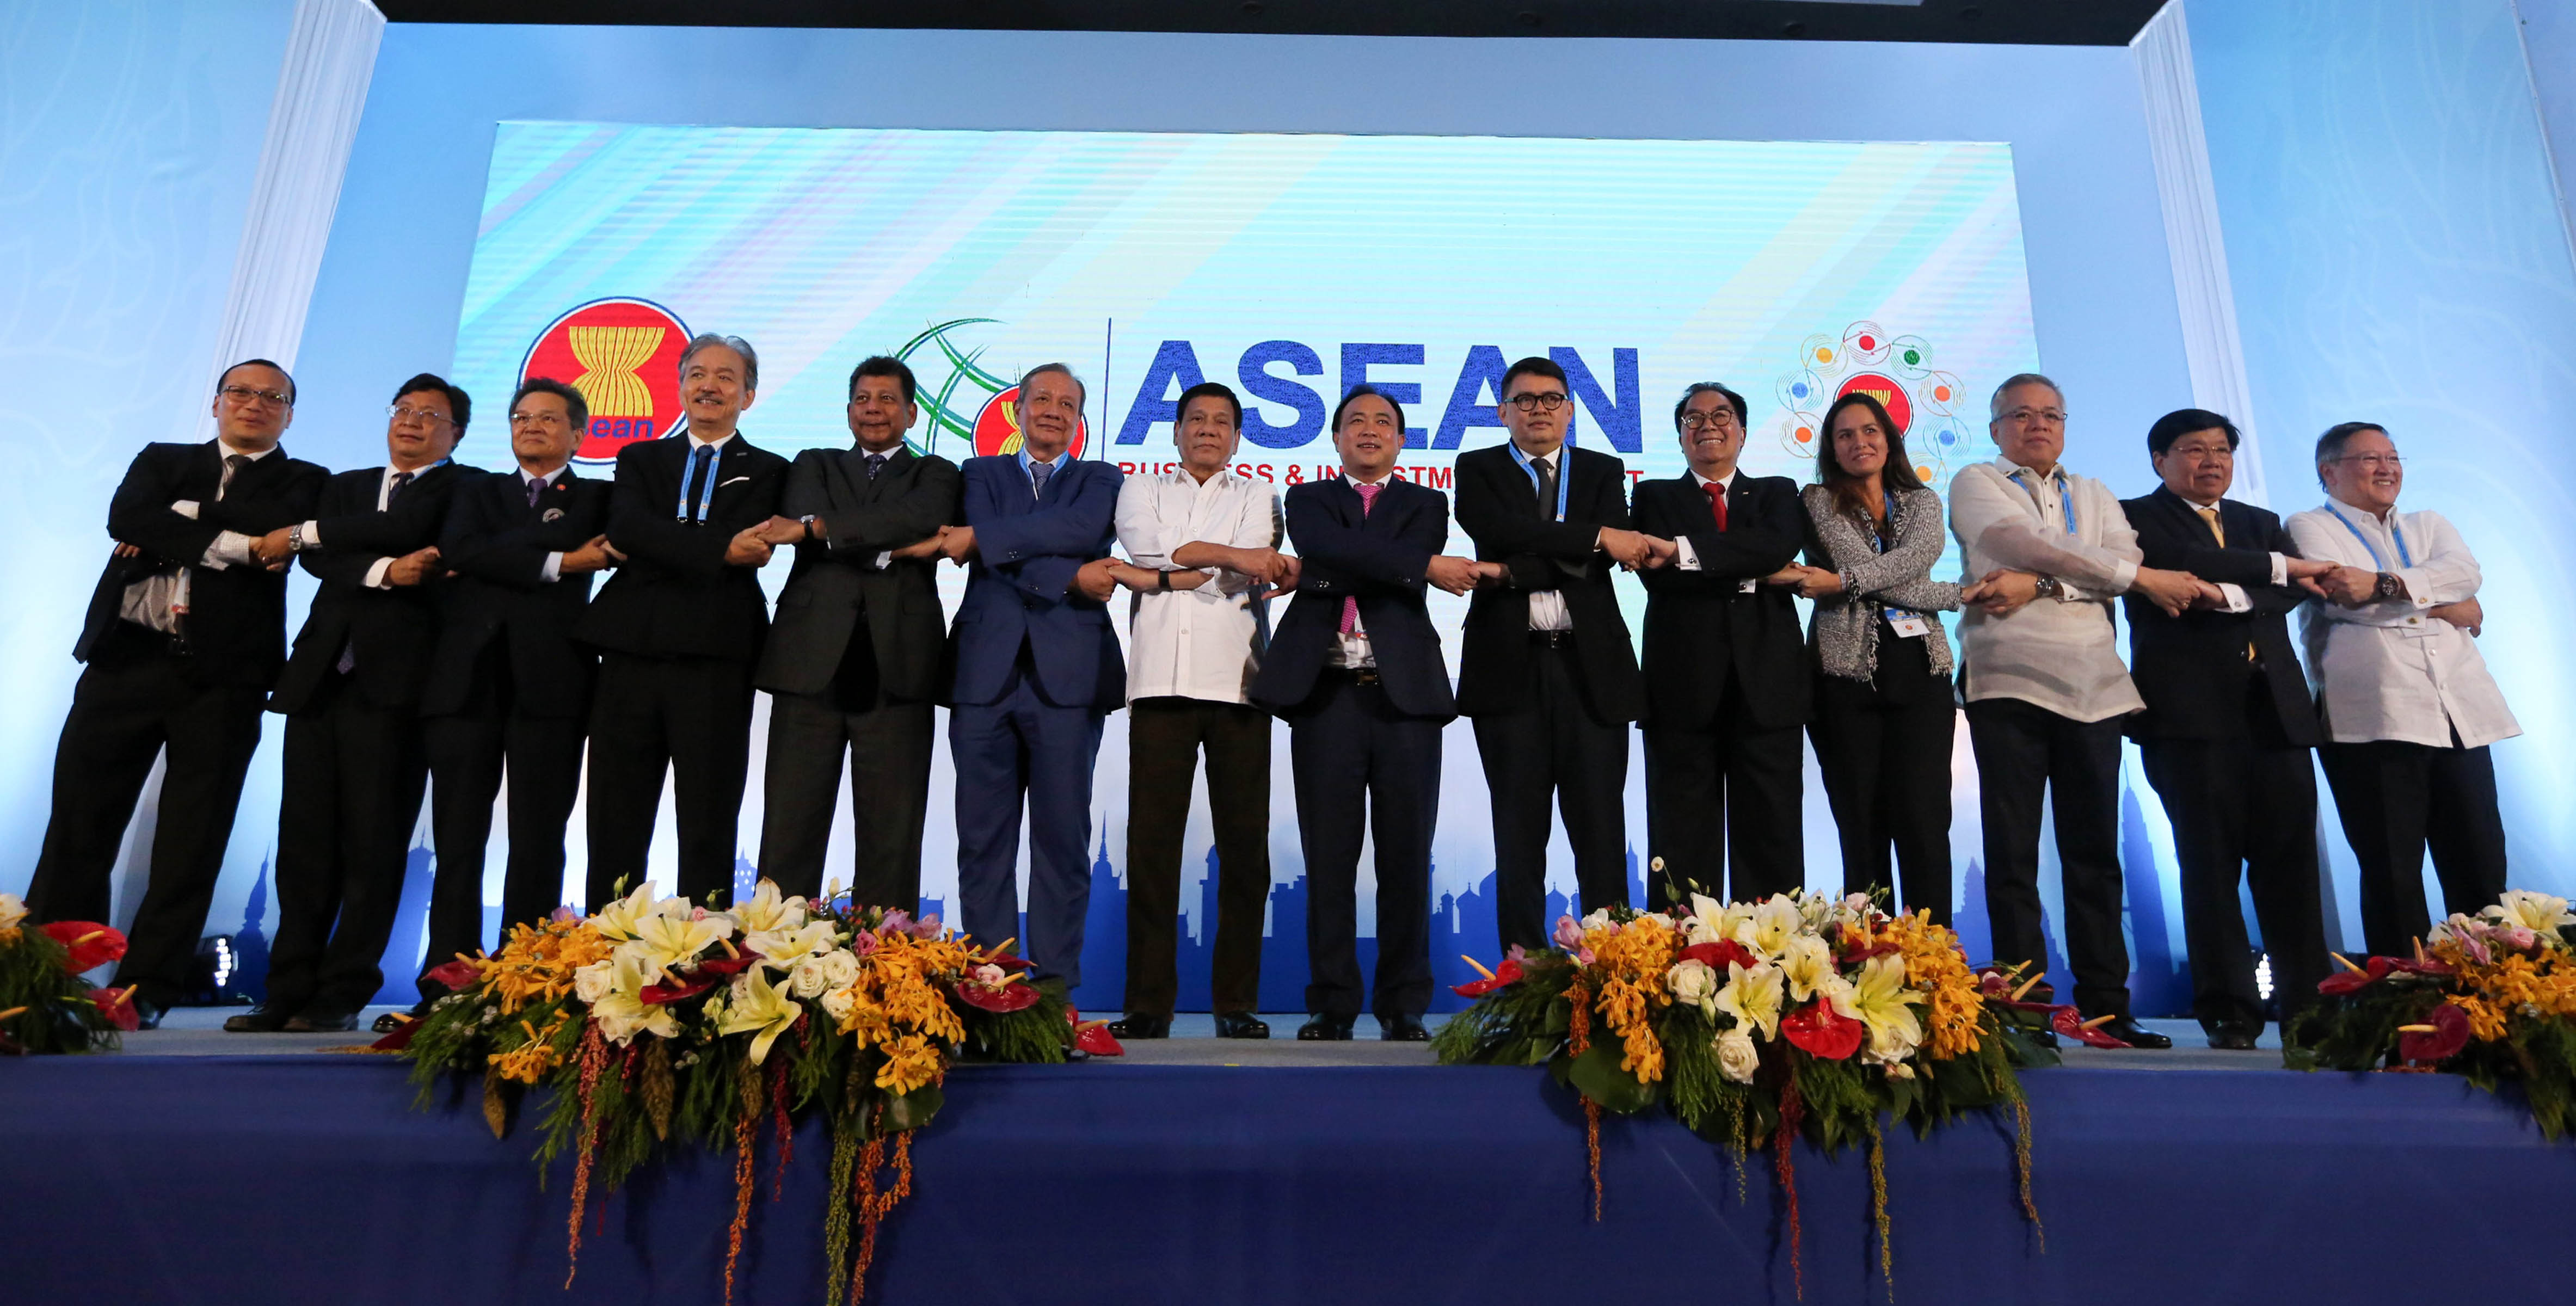 President Rodrigo Roa Duterte (middle, in white) joins hands with top business leaders in the region during the ASEAN Business and Investment Summit in Vientiane, Laos on Tuesday (September 6, 2016). The President is attending the three-day ASEAN summit in Laos. (Photo: King Rodriguez/PPD/PNA)